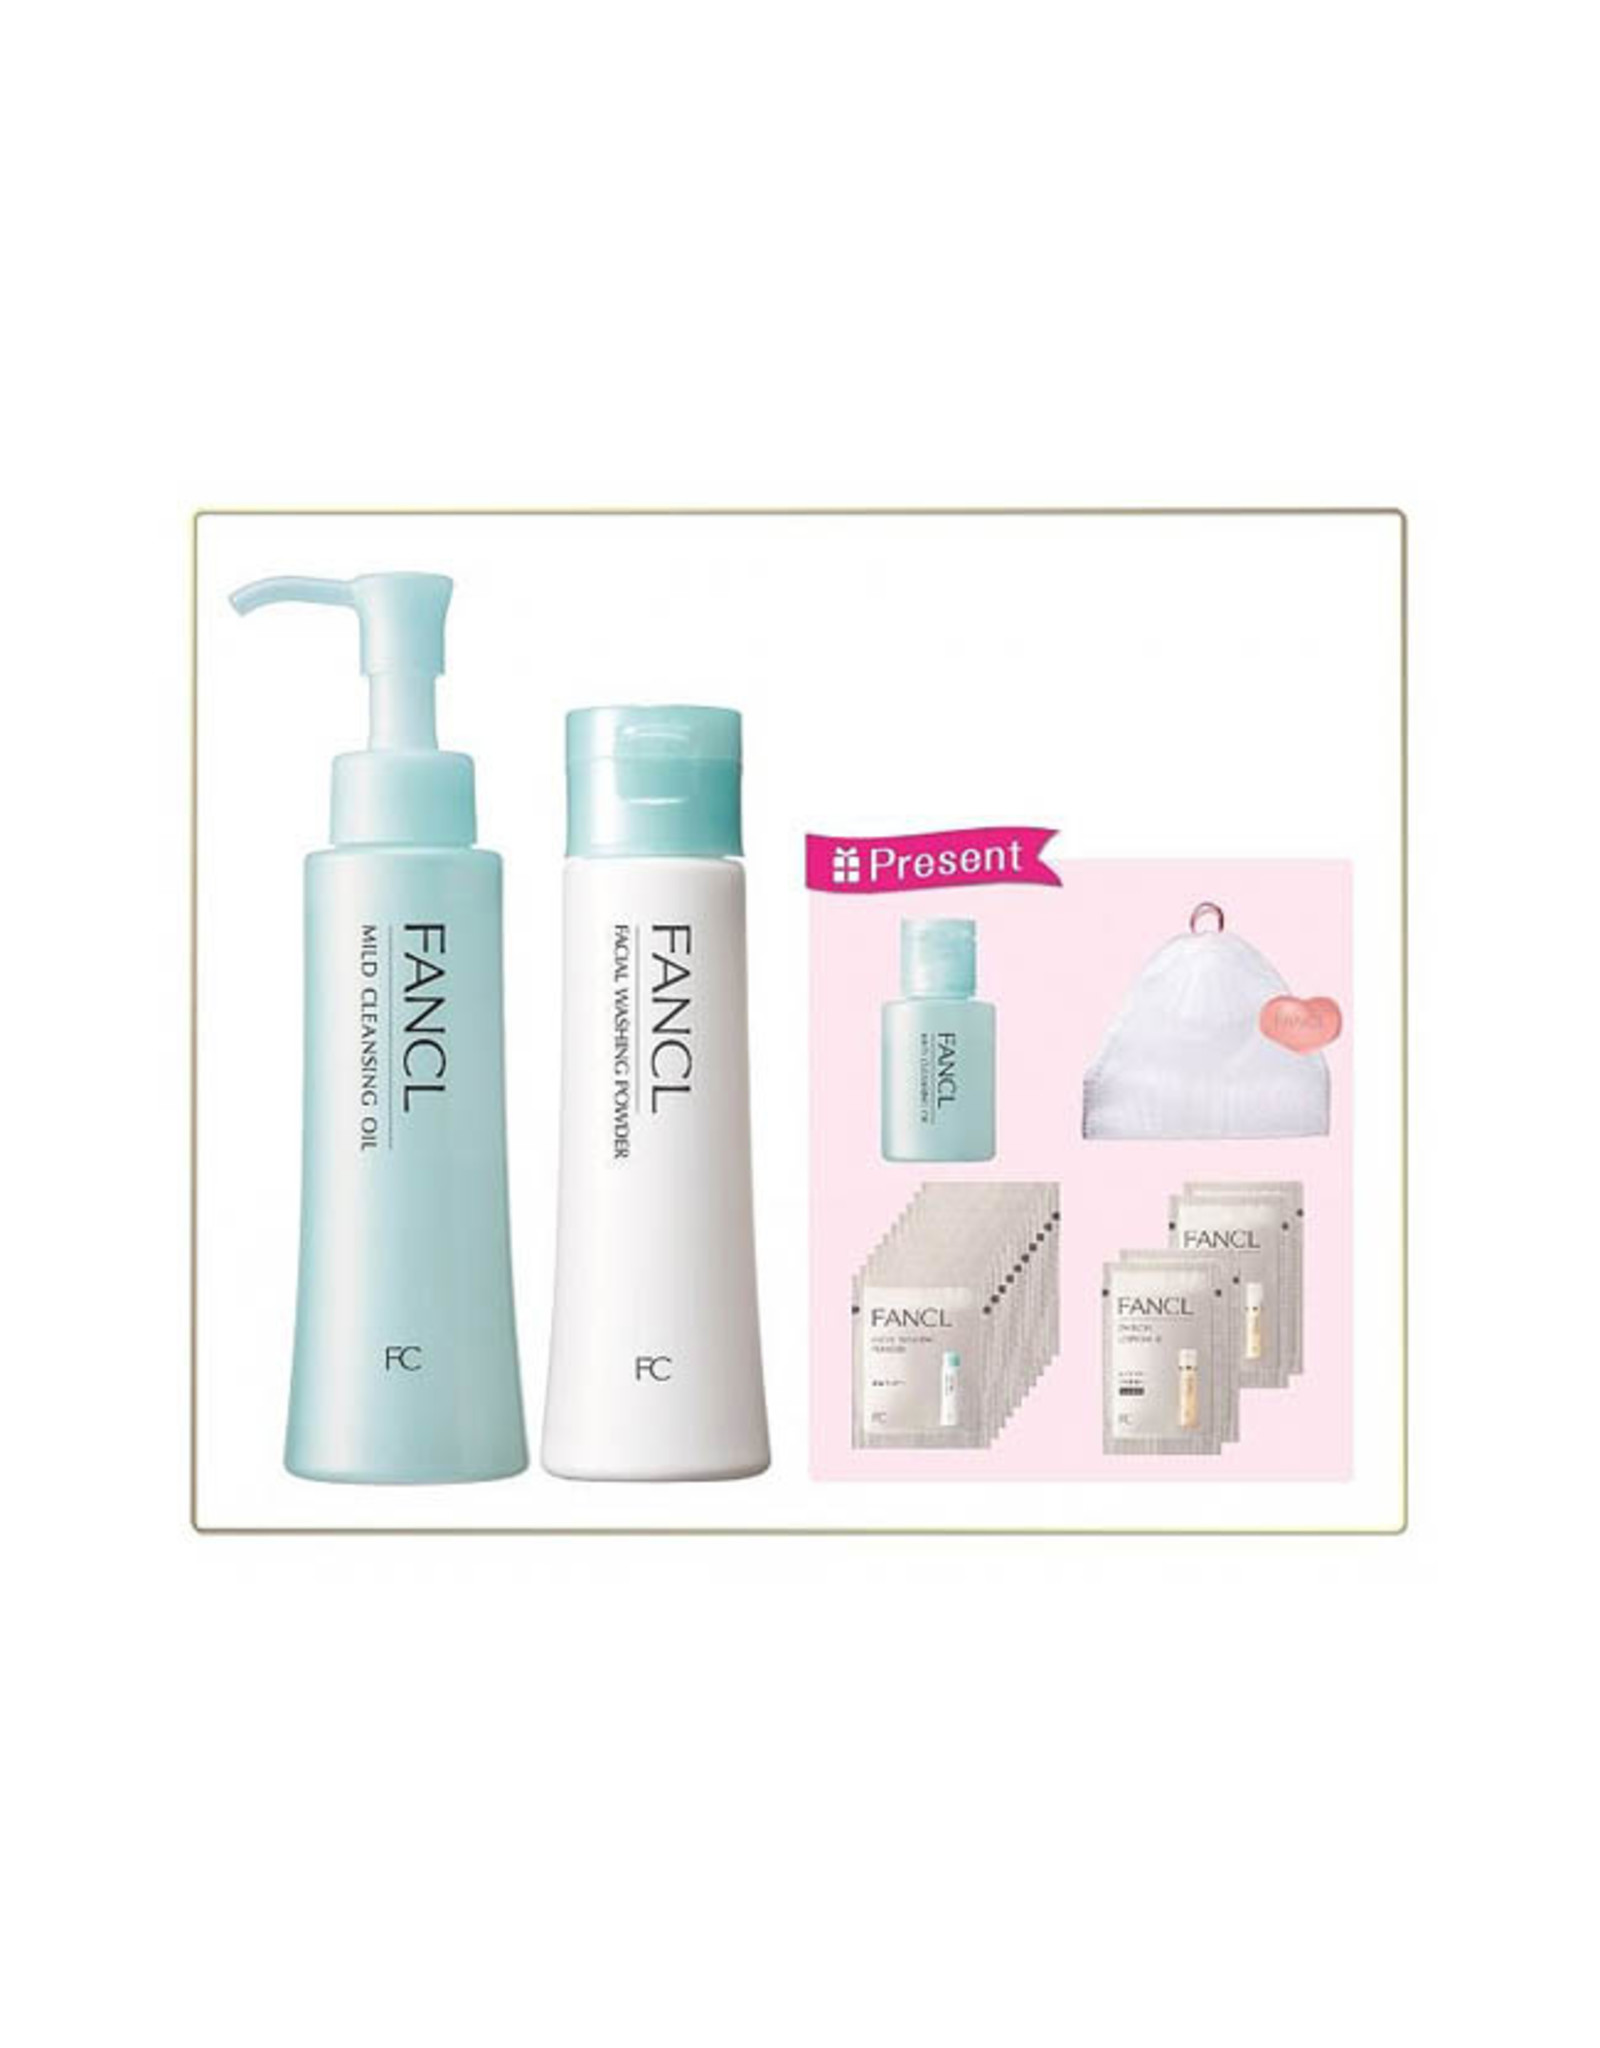 Fancl Limited Edition Cleansing Set